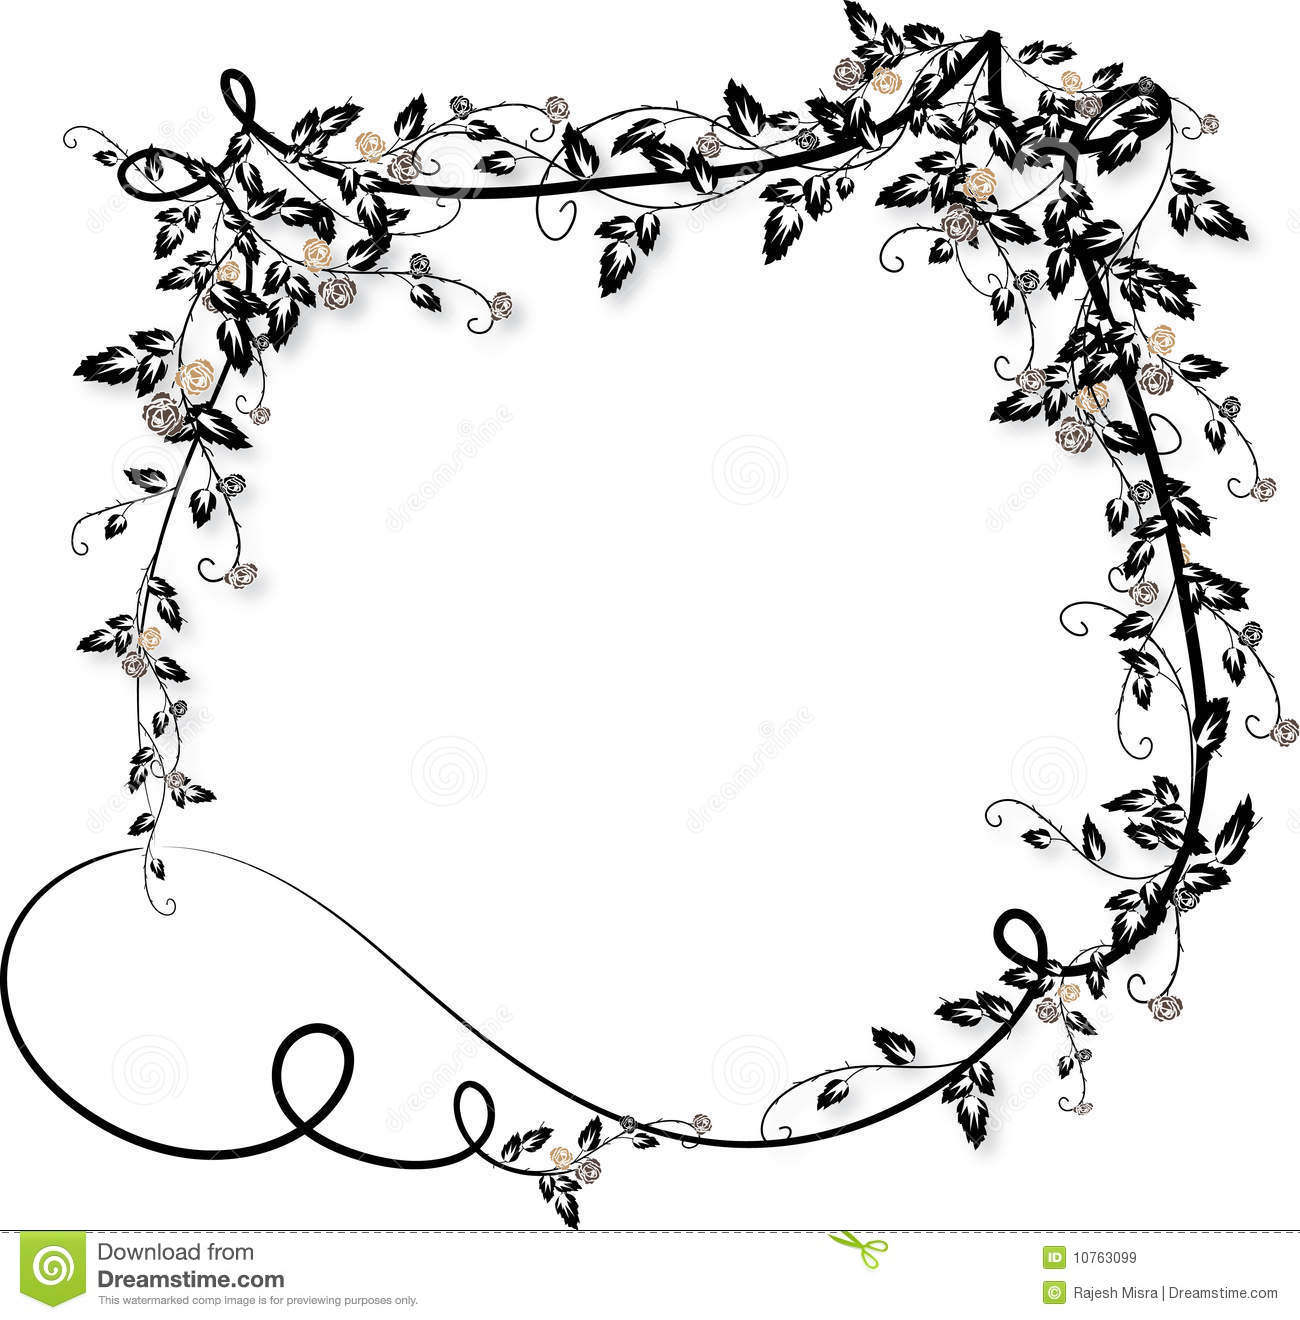 Rose Vines Frame-2 Royalty Free Stock Images - Image: 10763099